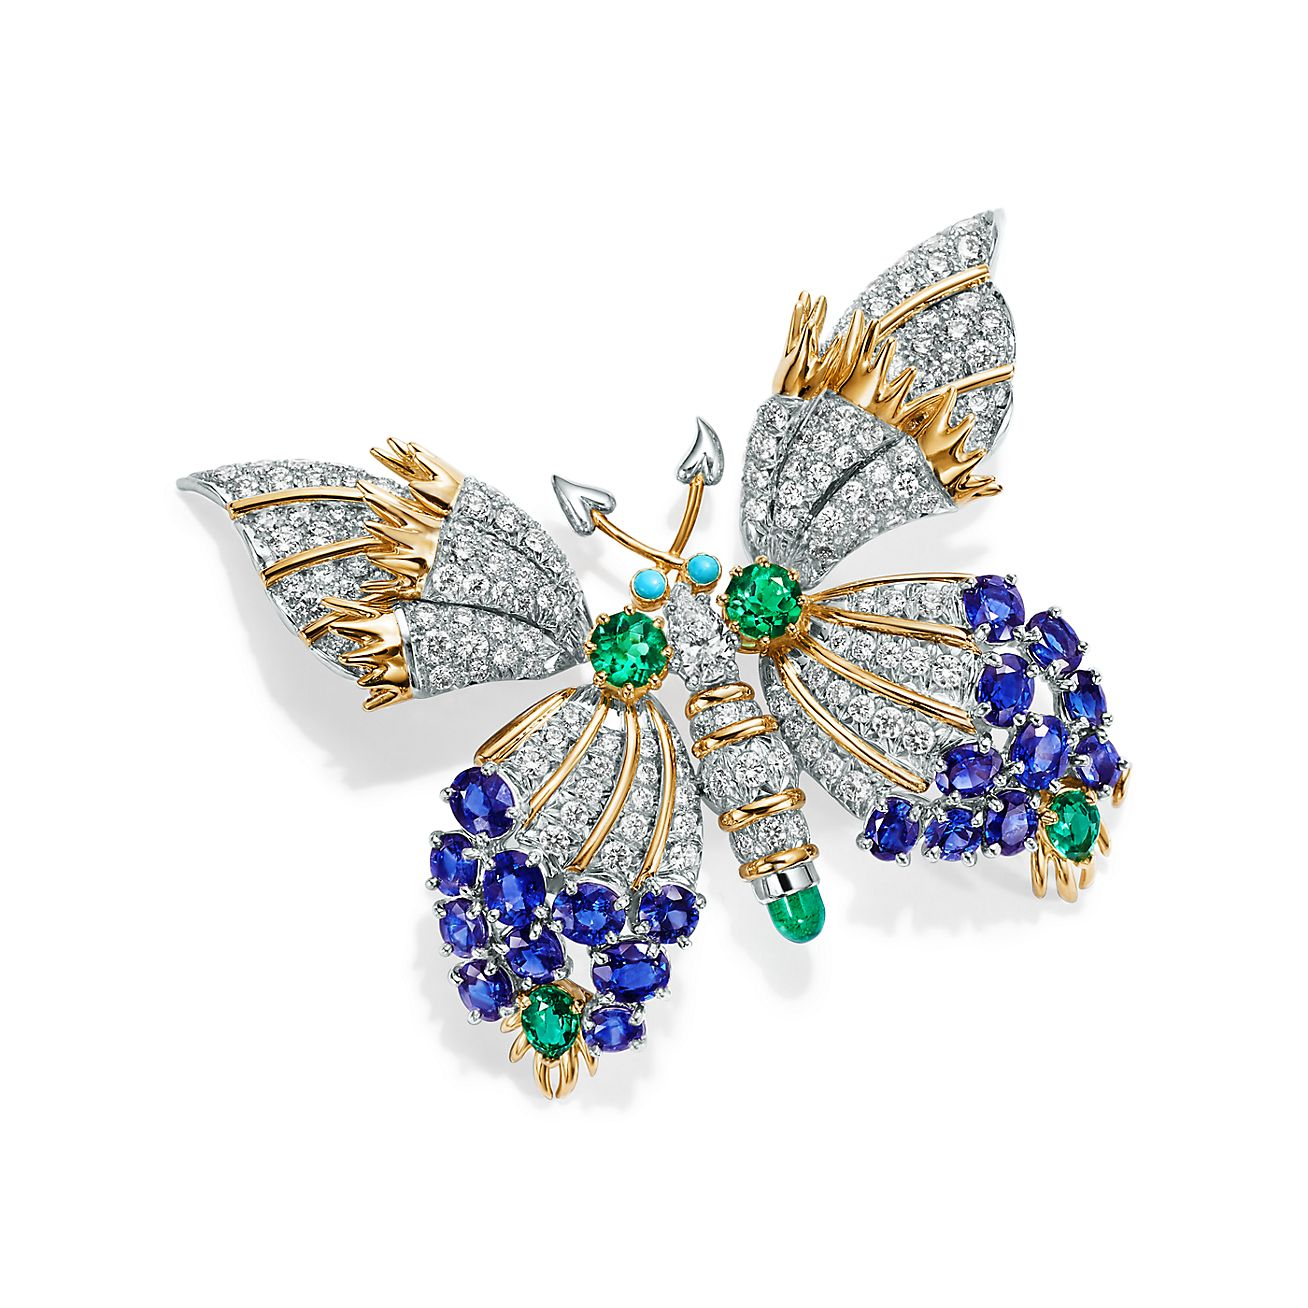 Butterfly Clip Brooch made of round and oval sapphires; round brilliant diamonds; round and pear-shaped emeralds; pear-shaped diamond; round turquoise cabochons.